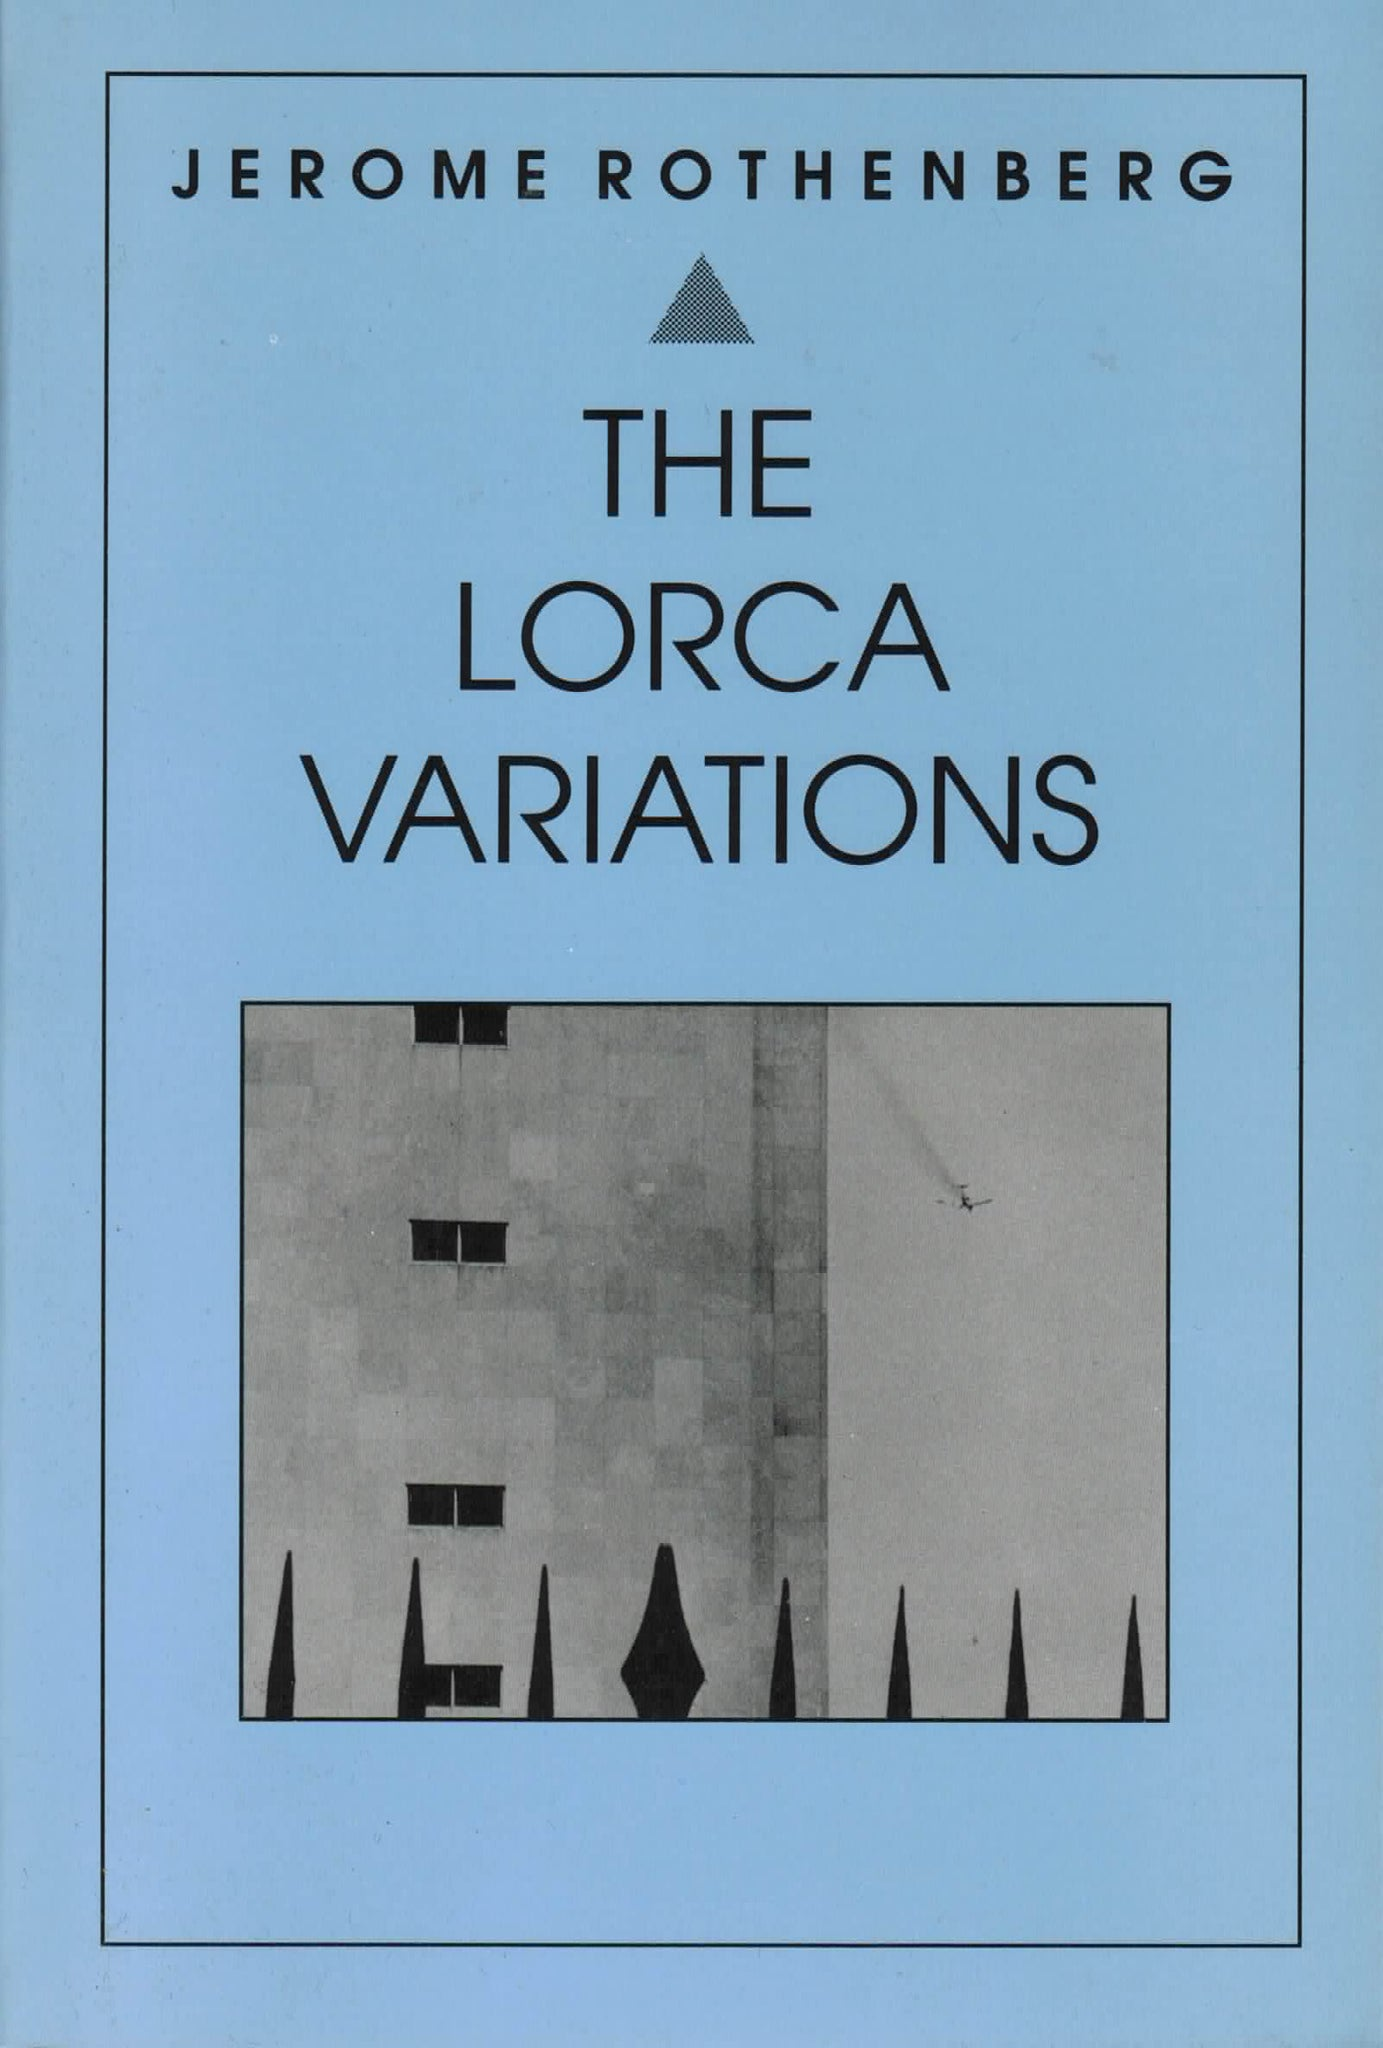 The Lorca Variations